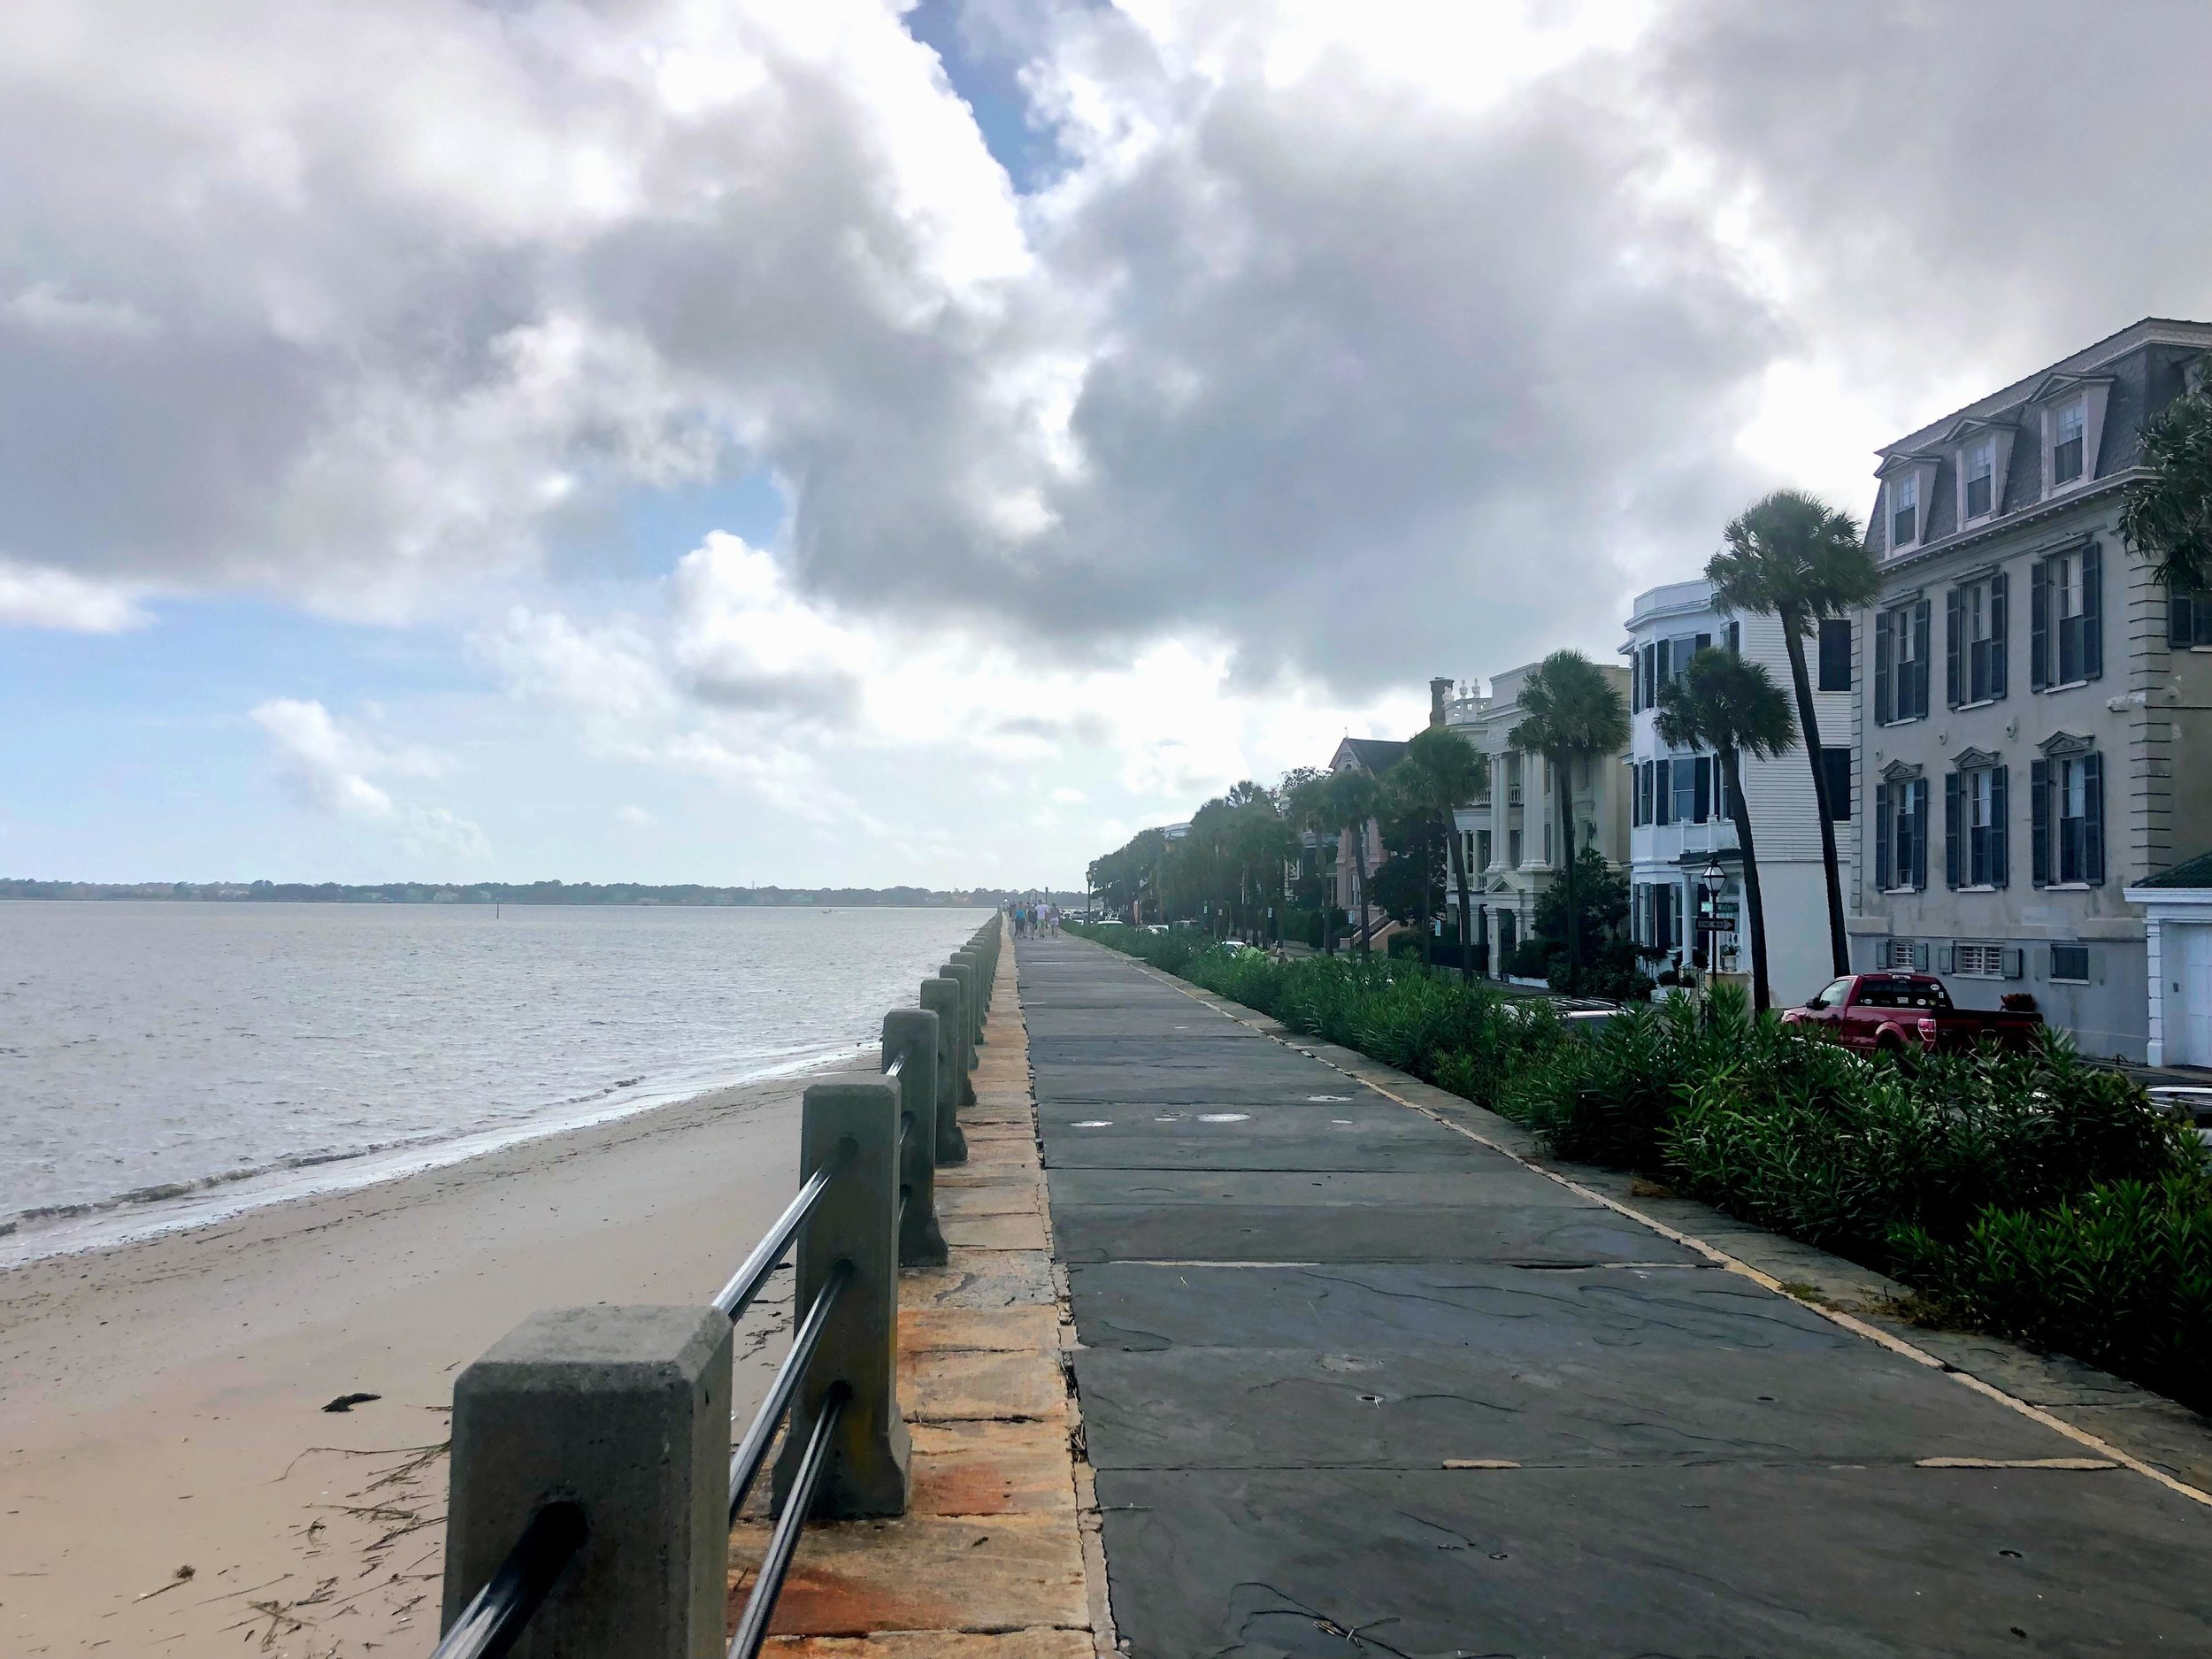 Taking my niece on a walking tour of downtown Charleston - The Battery